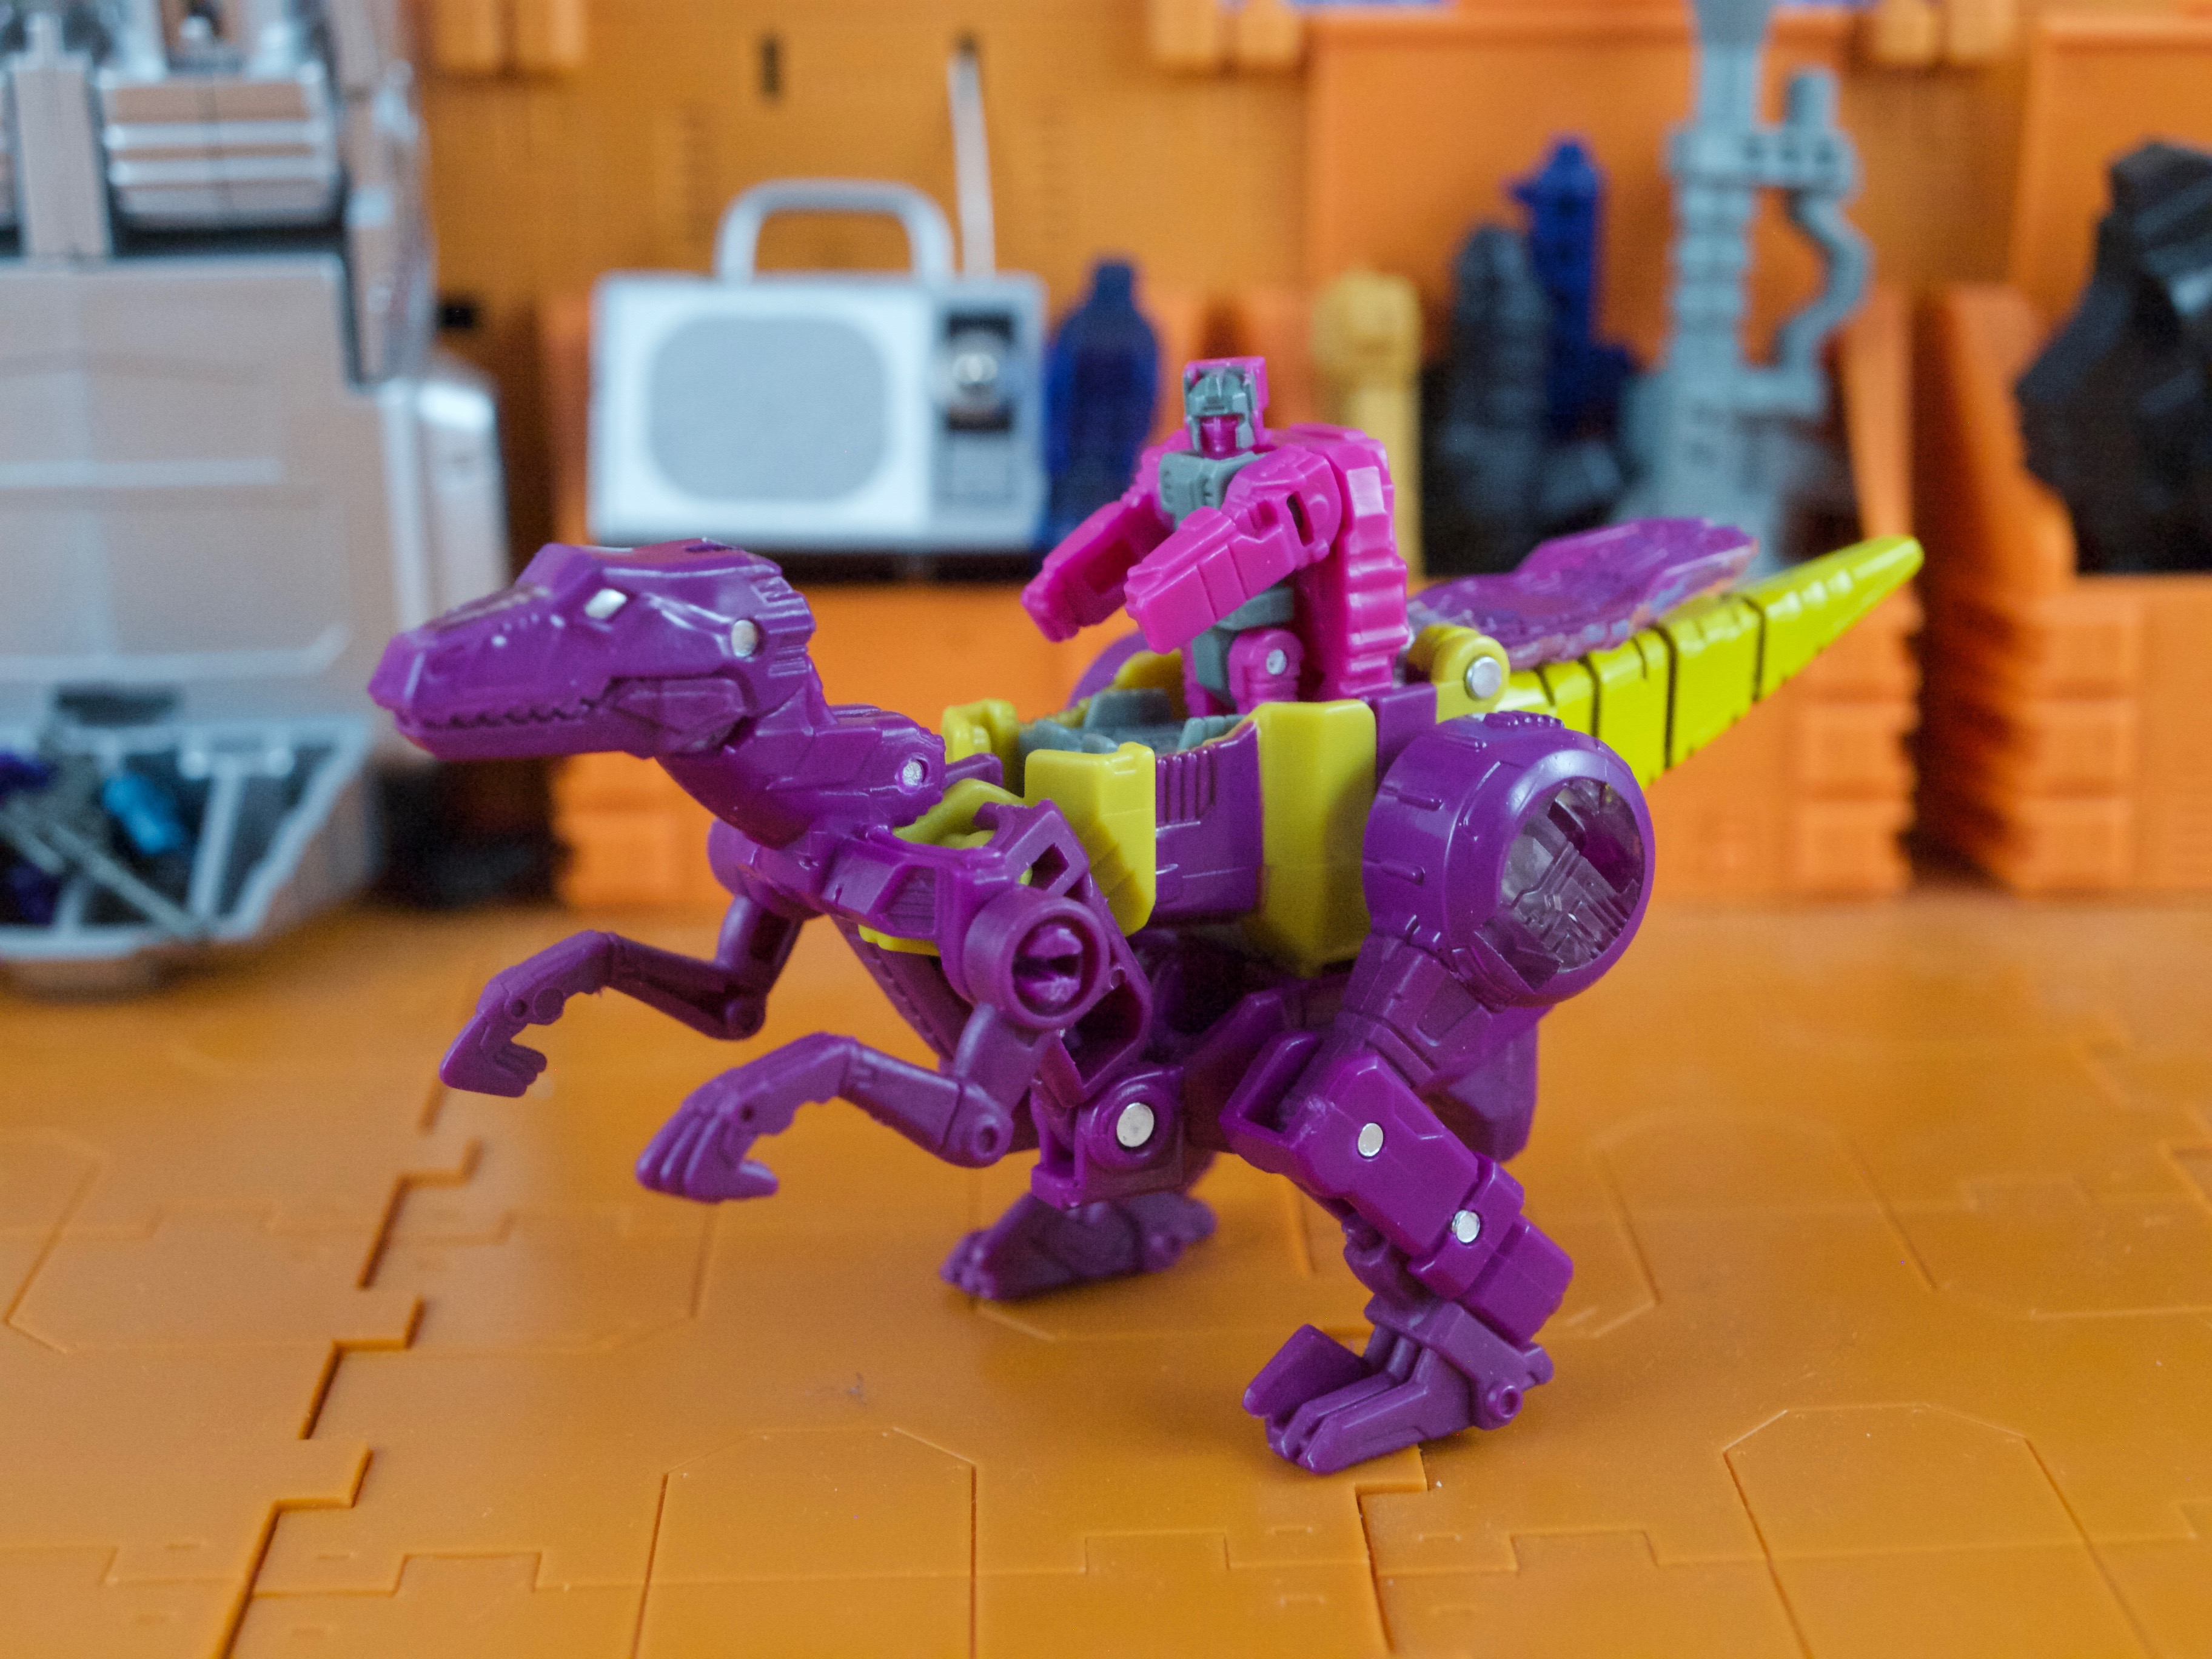 Cindersaur with Liege Maximo